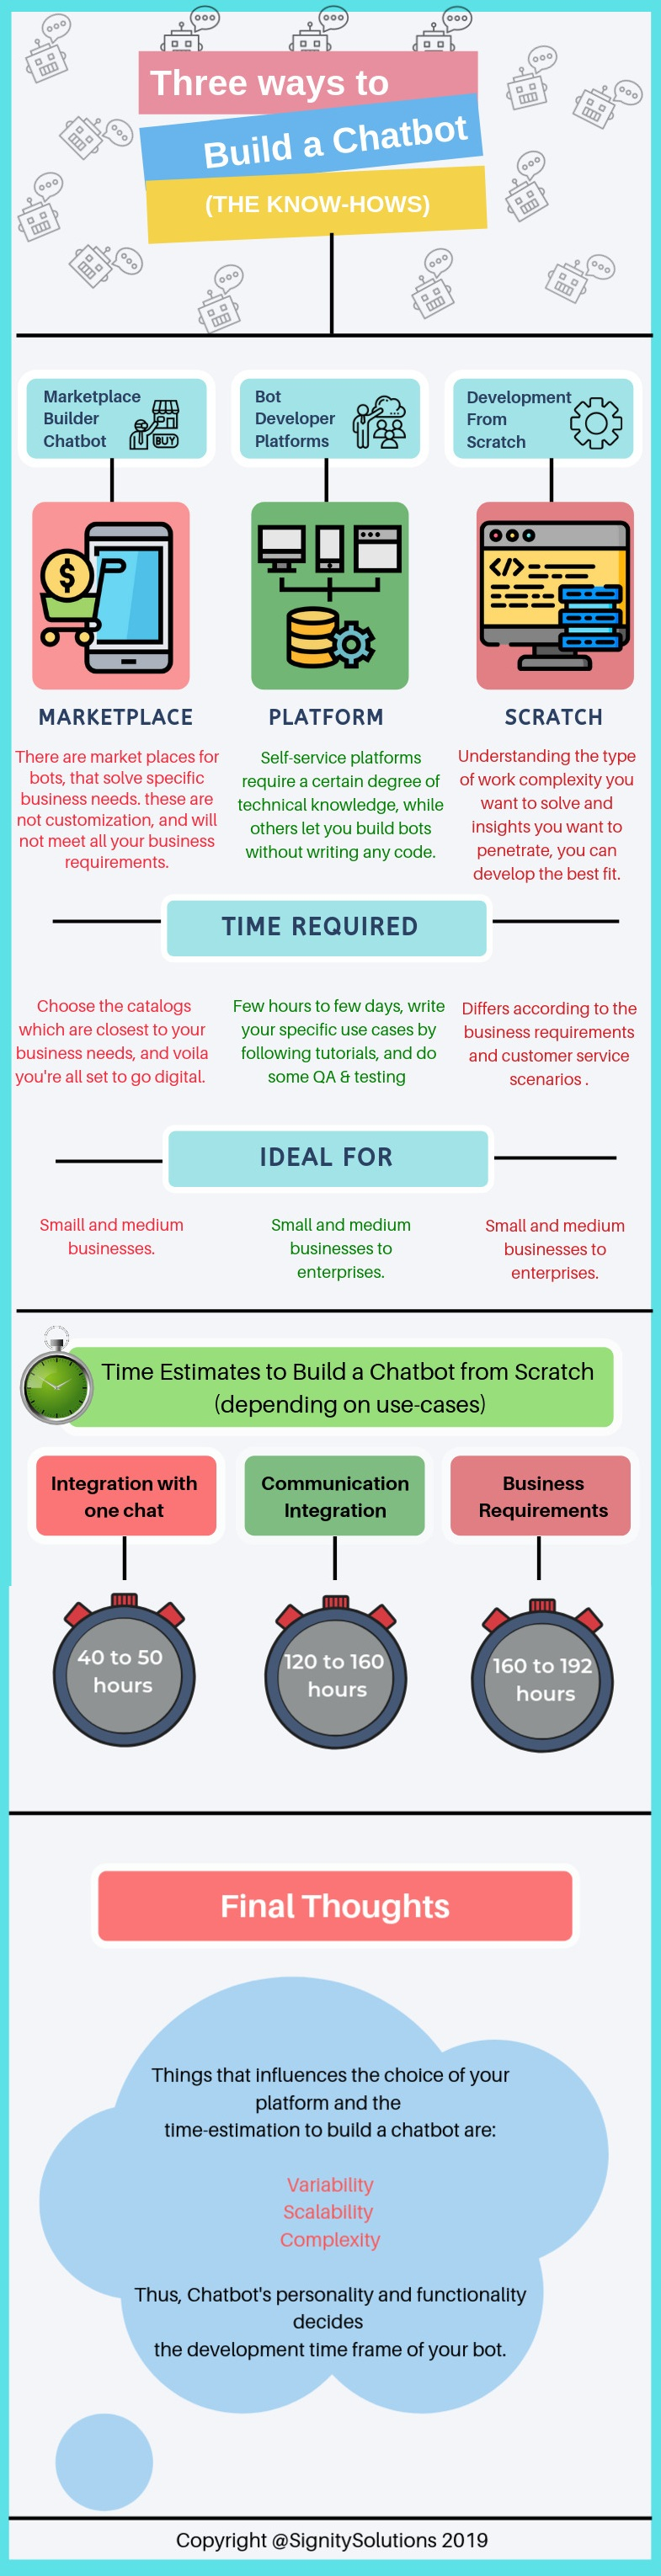 https://www.signitysolutions.com/blog/wp-content/uploads/2019/07/Time-To-Build-Chatbot-Infographic-SignitySolutions.jpg